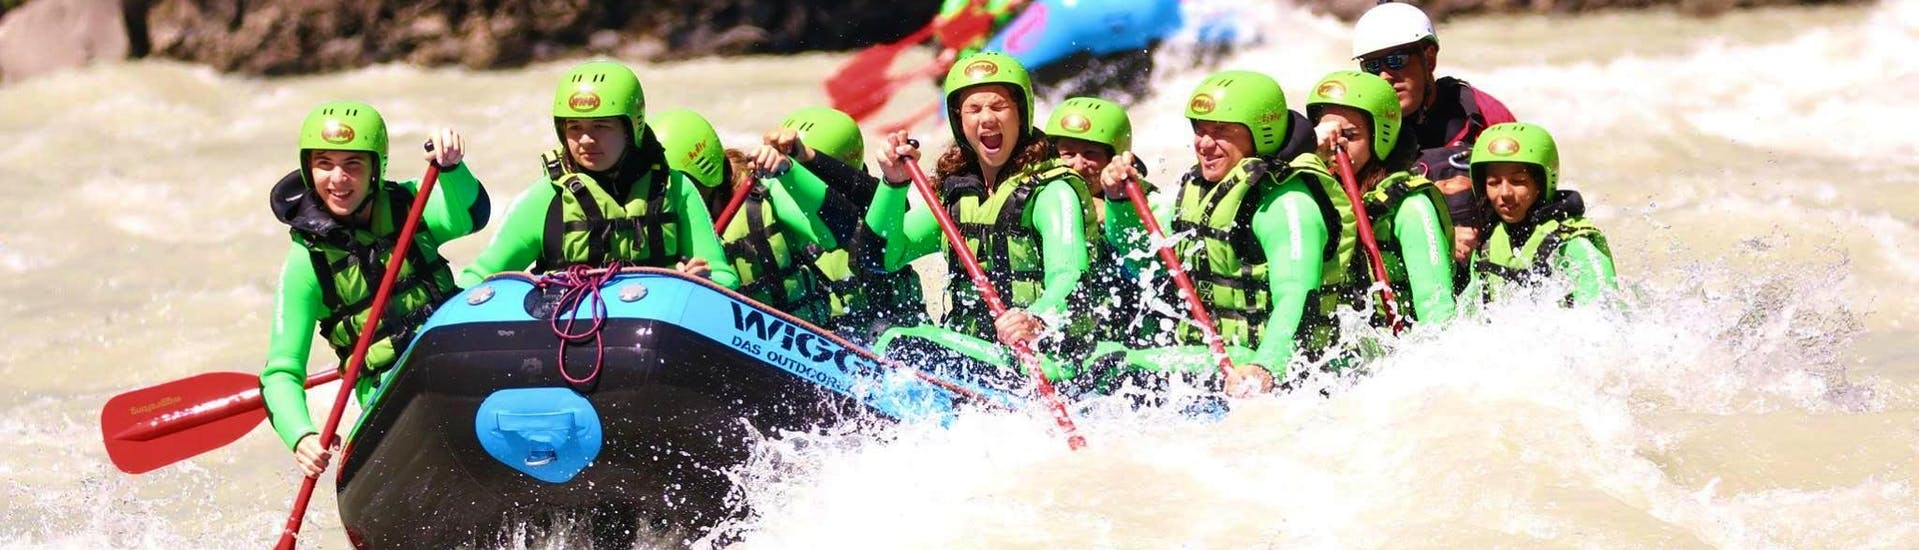 Classic Rafting in the Imster Schlucht